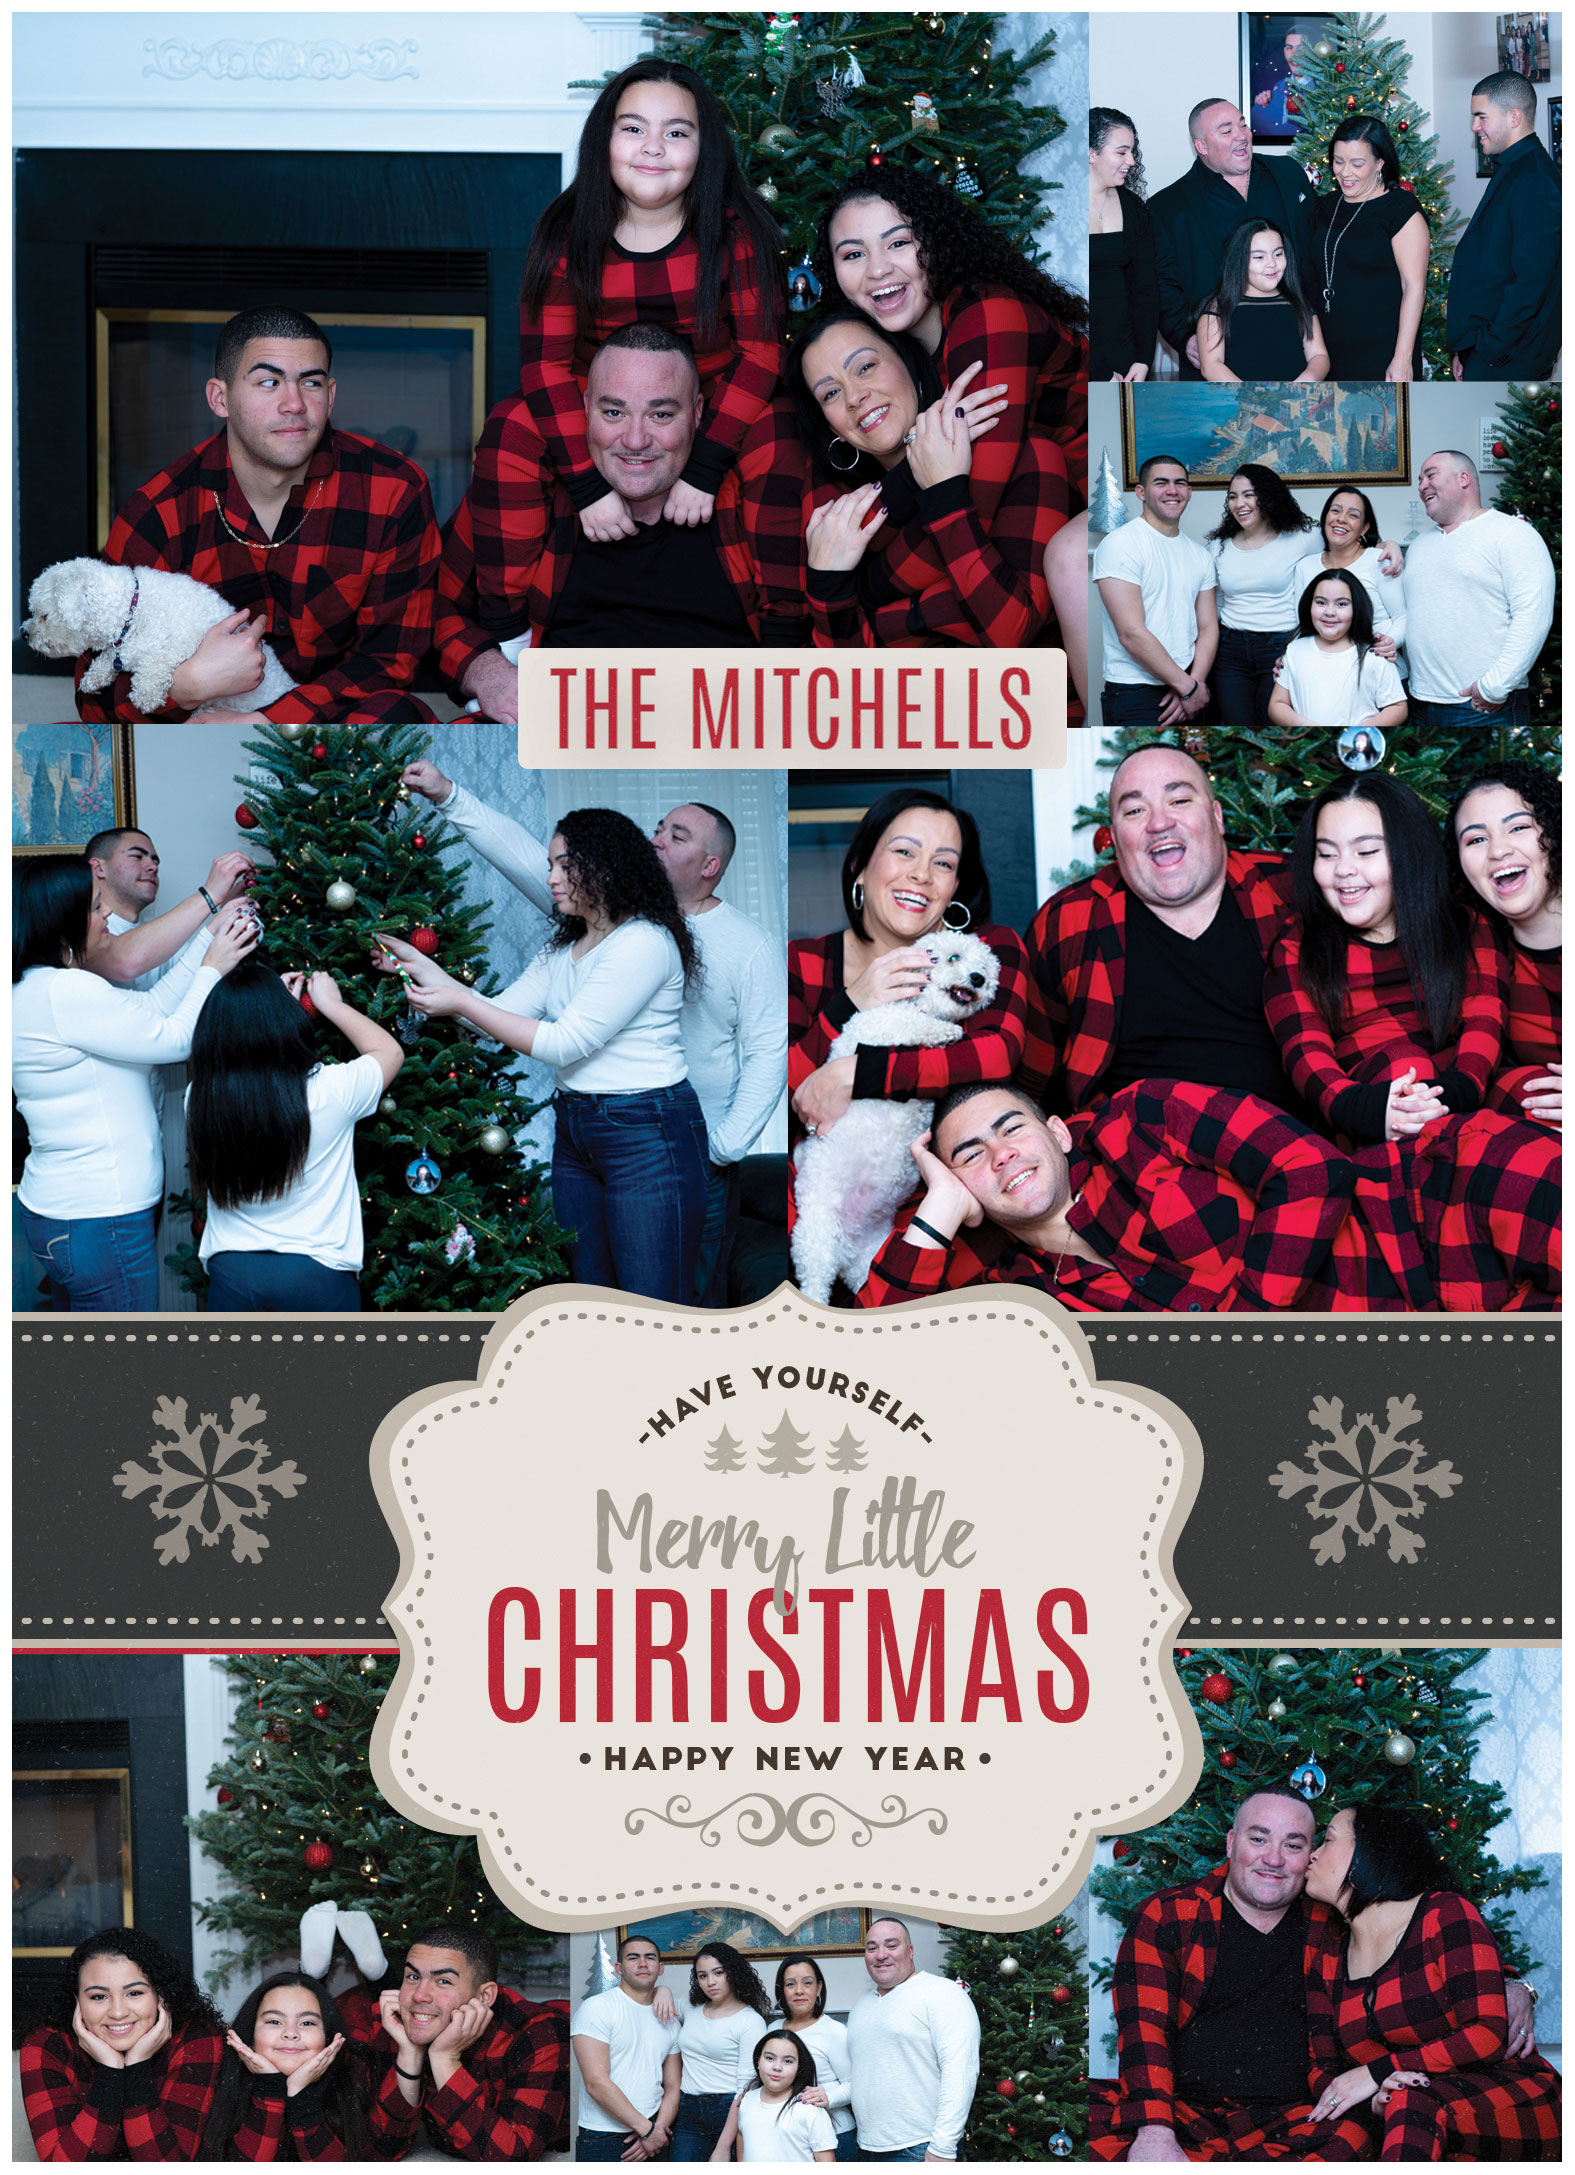 The Mitchells Christmas Photo Shoot - Christmas Photo Shoot